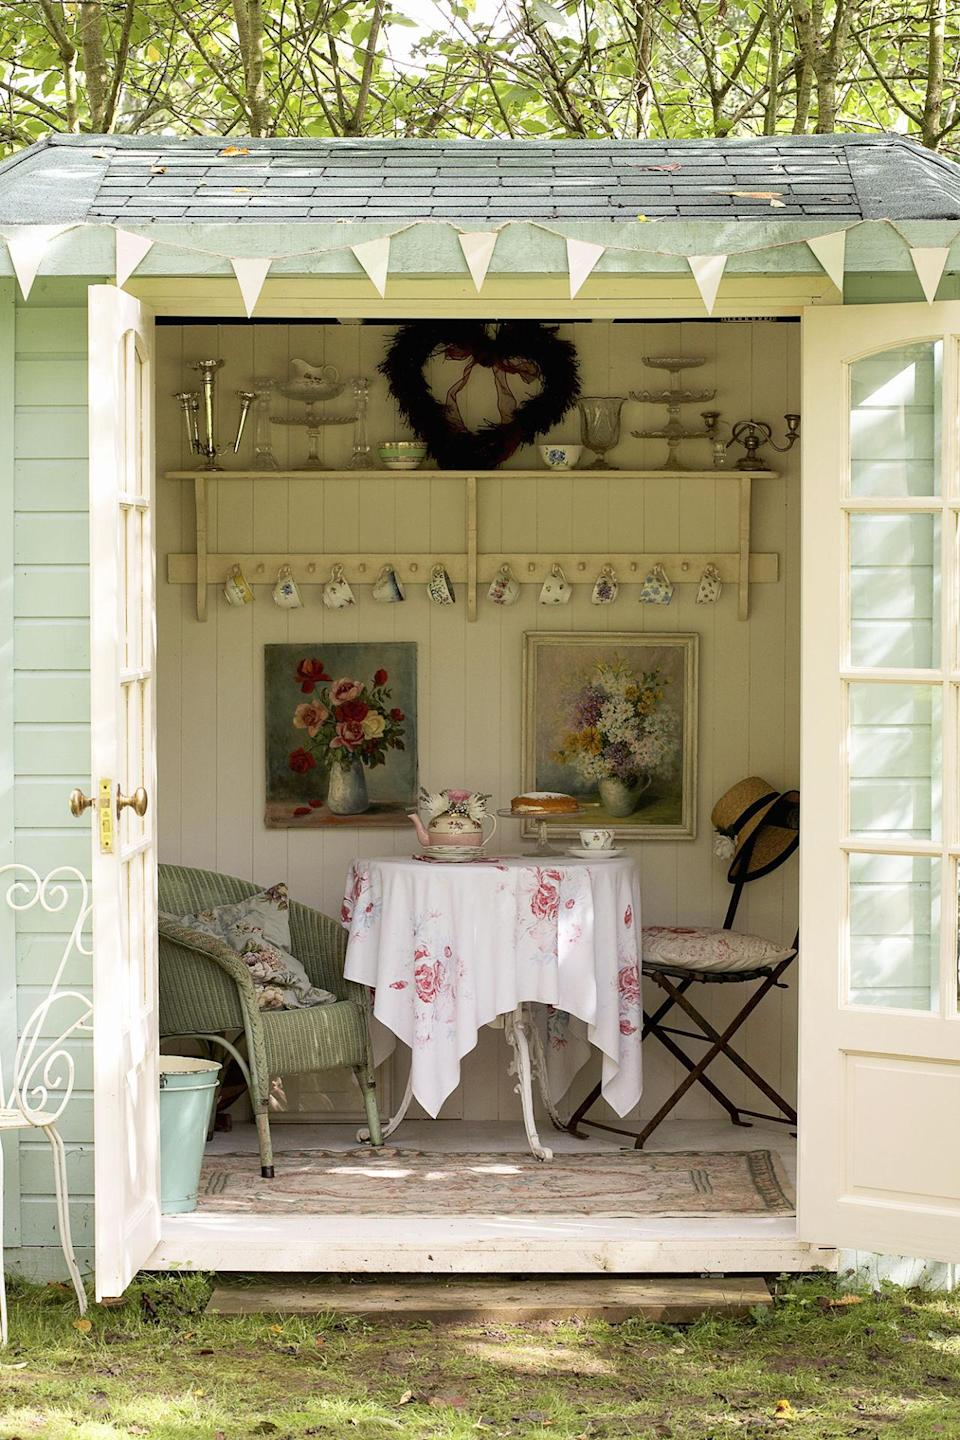 <p><span>Paintings, fabrics and china on a floral theme have been teamed with vintage tableware to bring a nostalgic elegance to this summerhouse, making it perfect </span><span>for afternoon tea.</span></p>